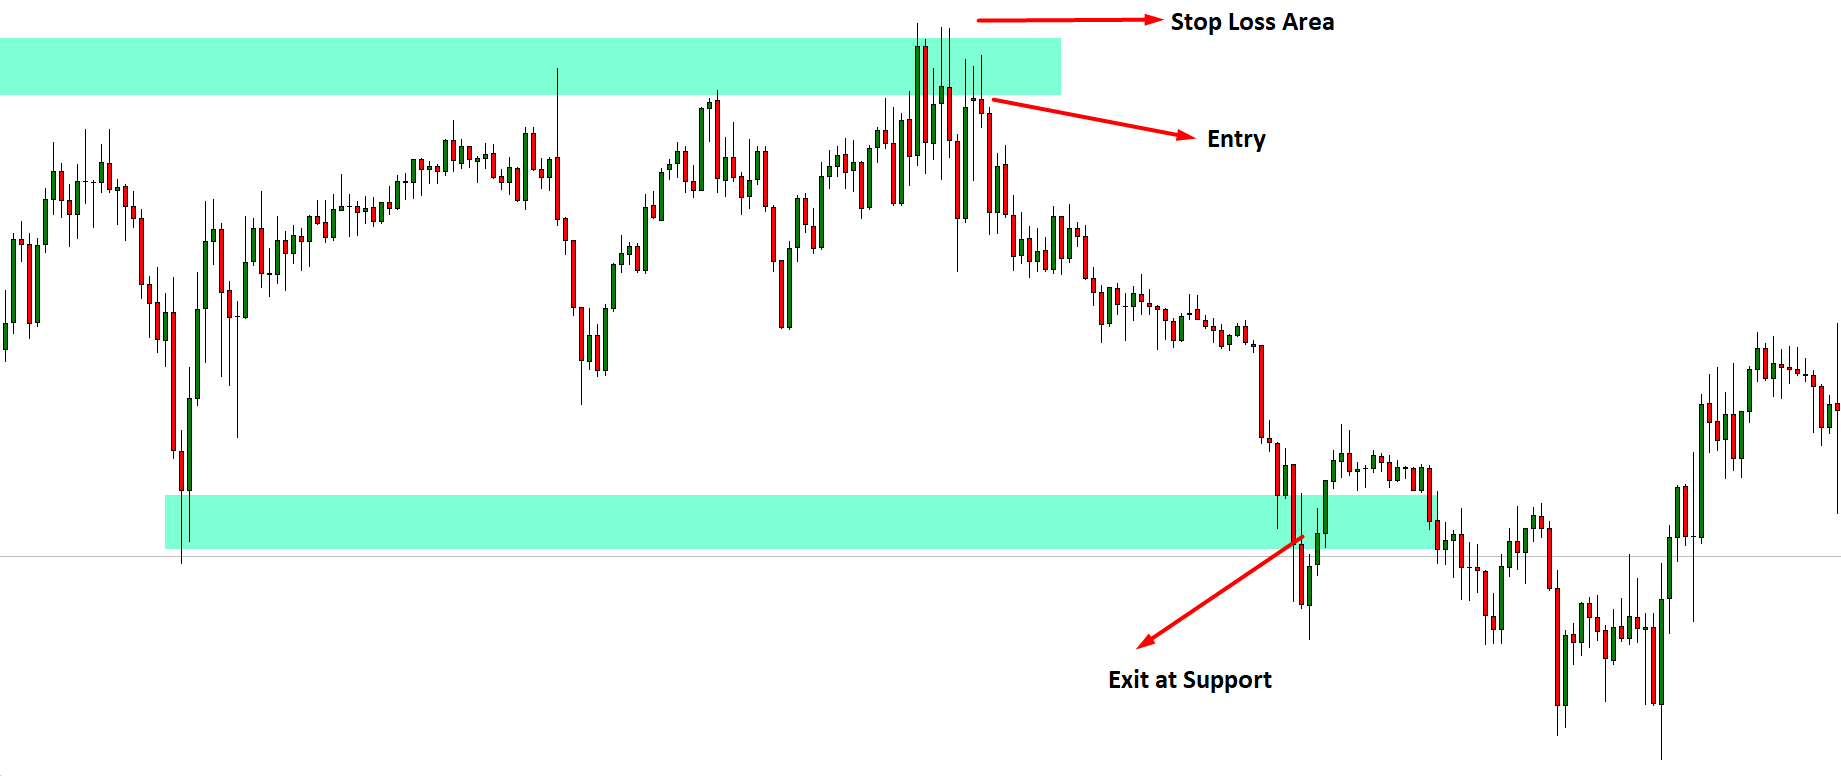 Sell closer to resistance in downtrends where prices drop down in the chart pattern.